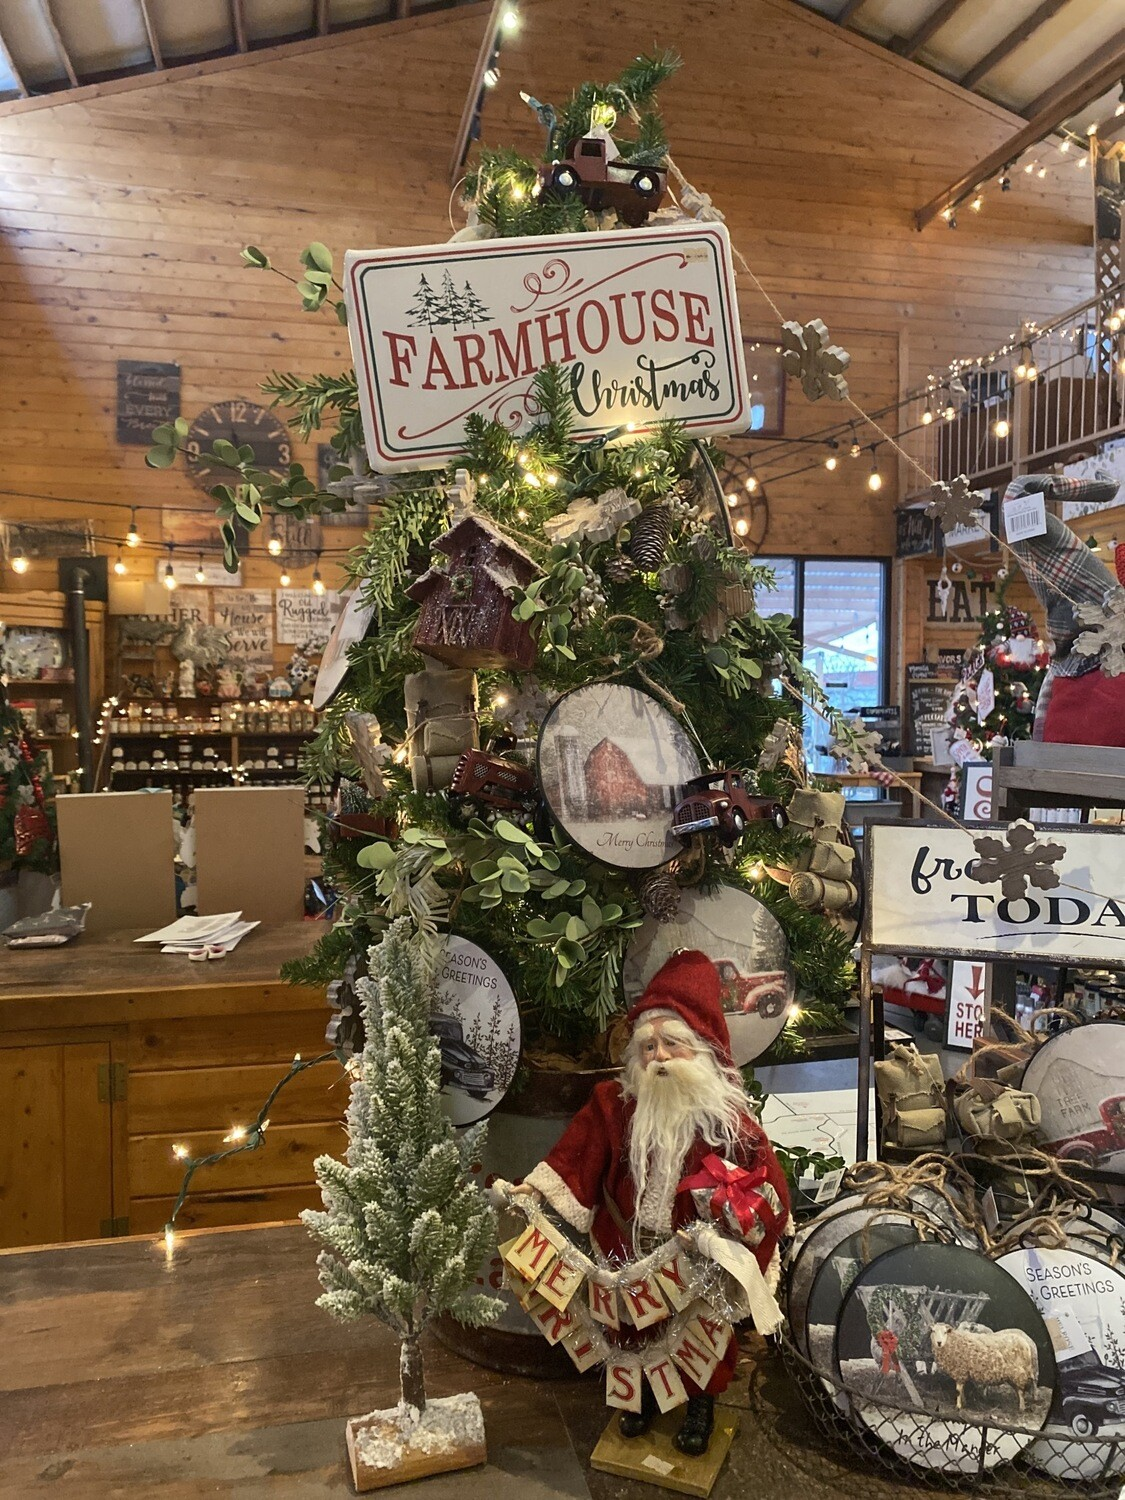 Farmhouse Christmas Tree Display